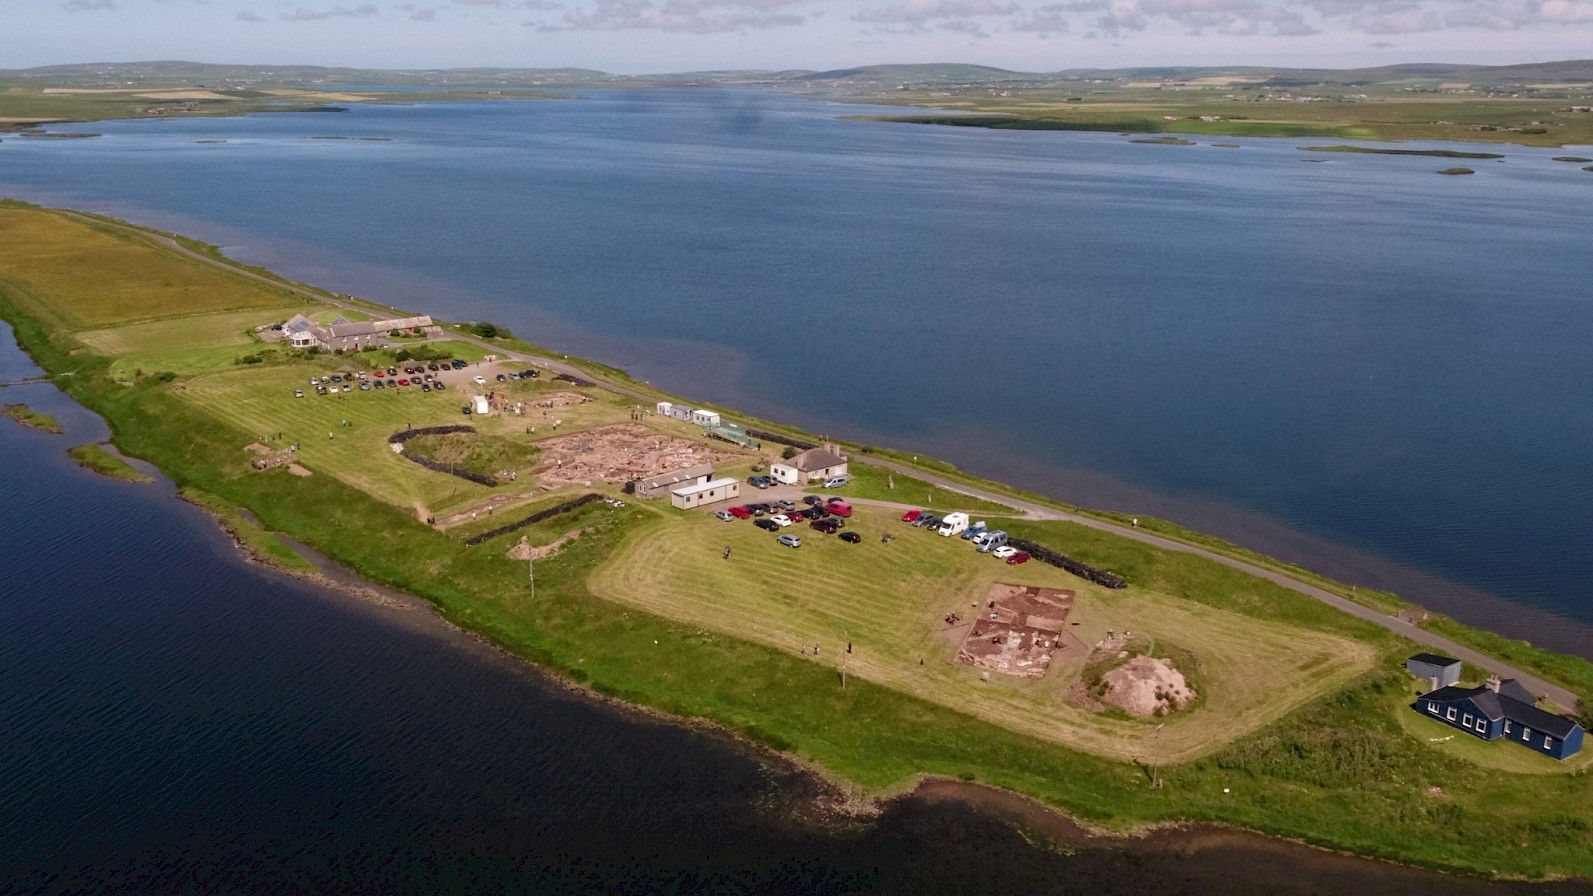 Aerial view of the Ness of Brodgar - image by Scott Pike